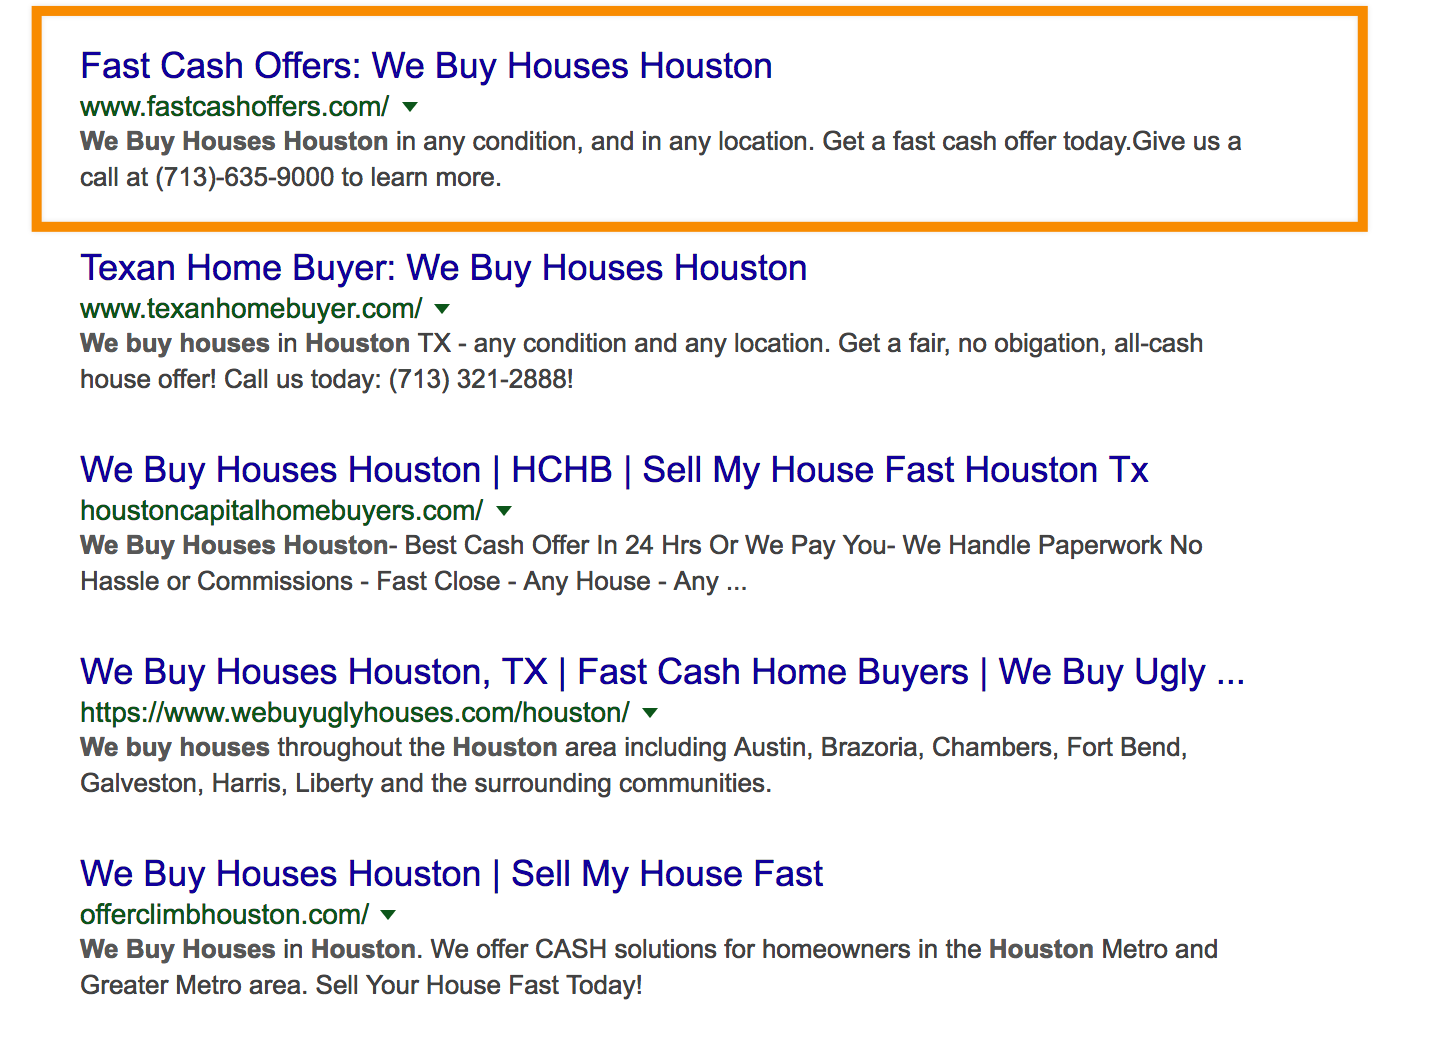 we buy houses houston seo ranking